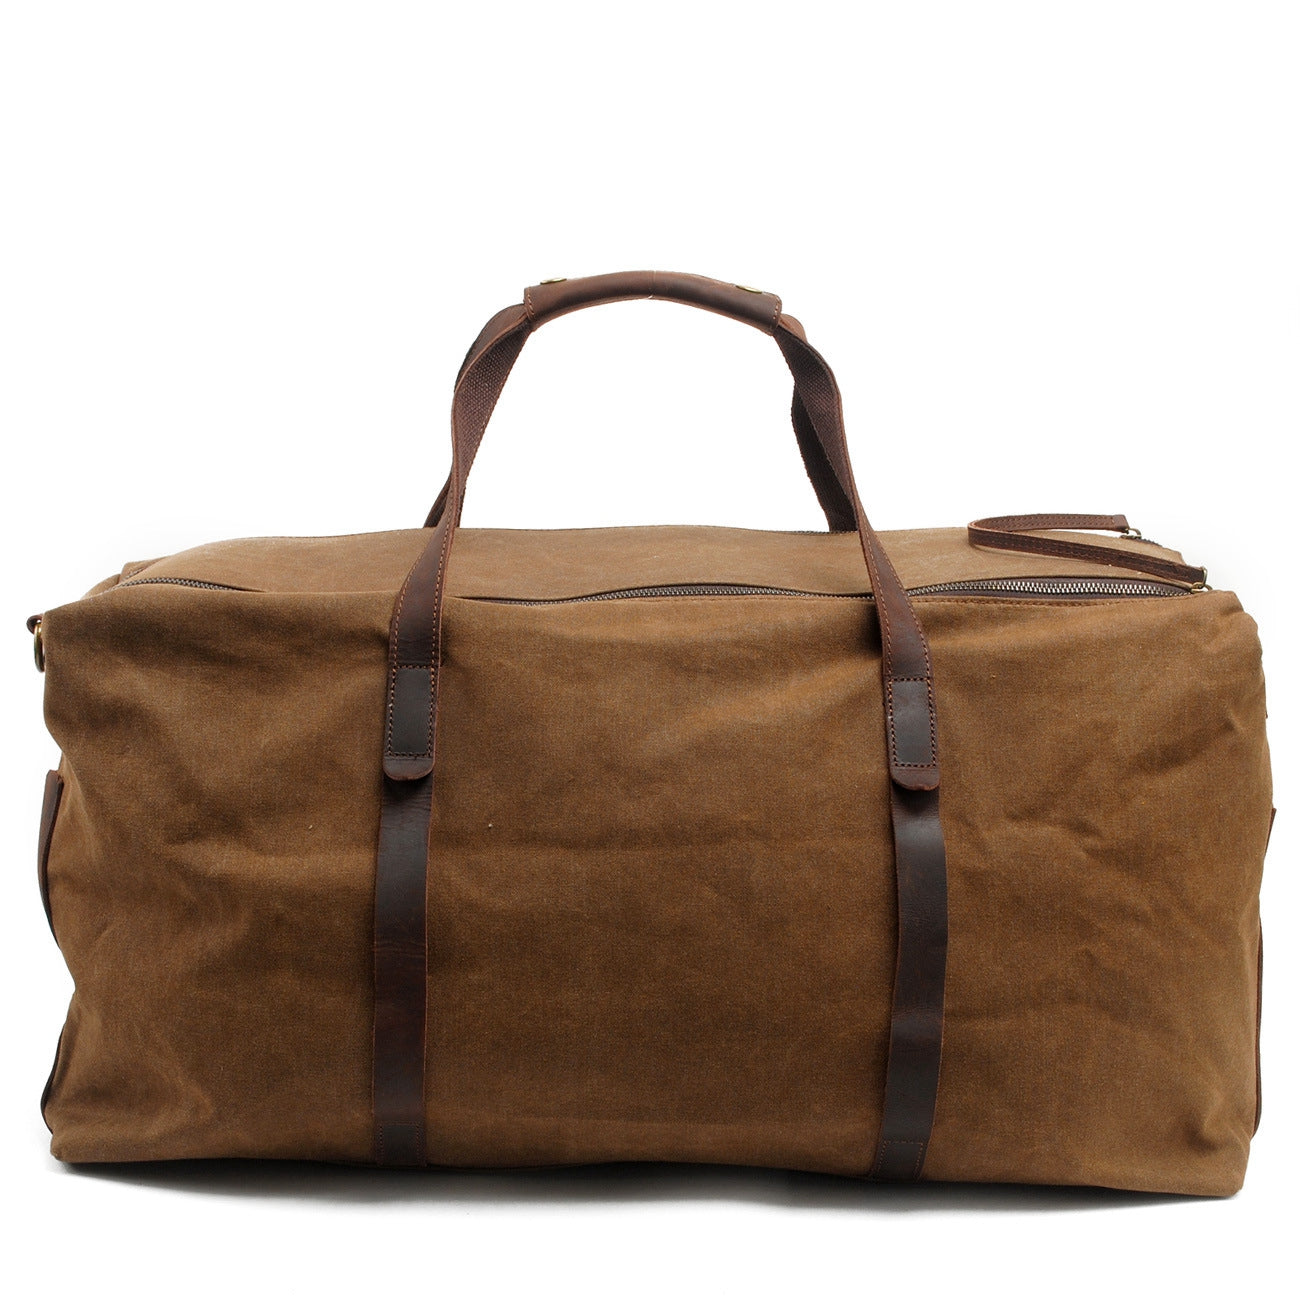 Best Travel Duffle Bag